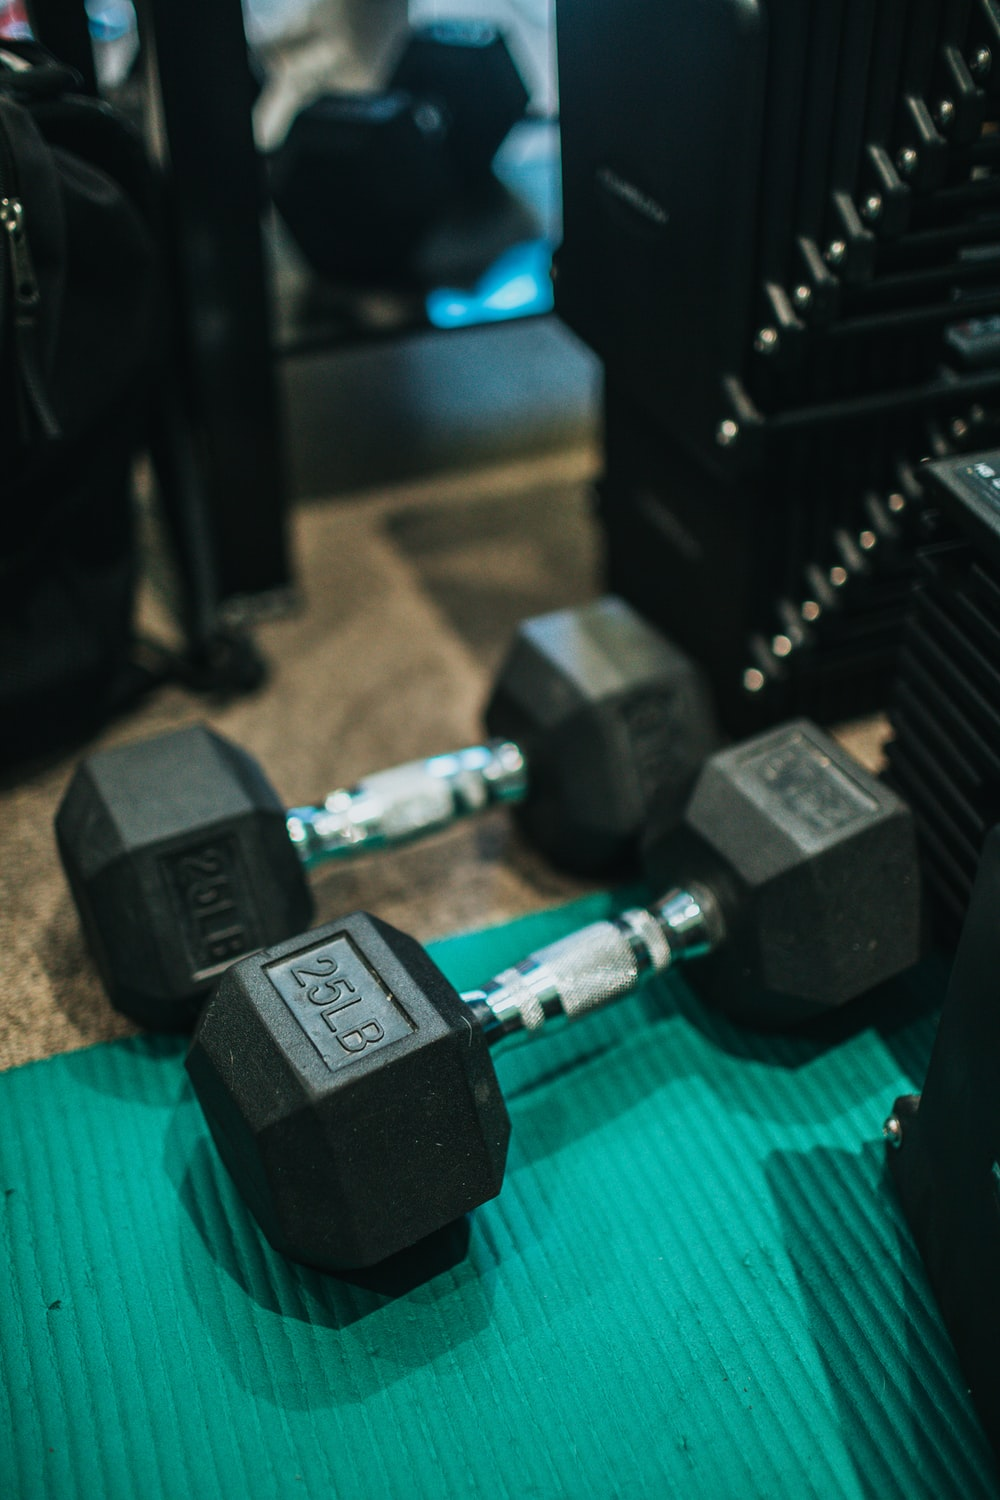 2 black and gray dumbbells